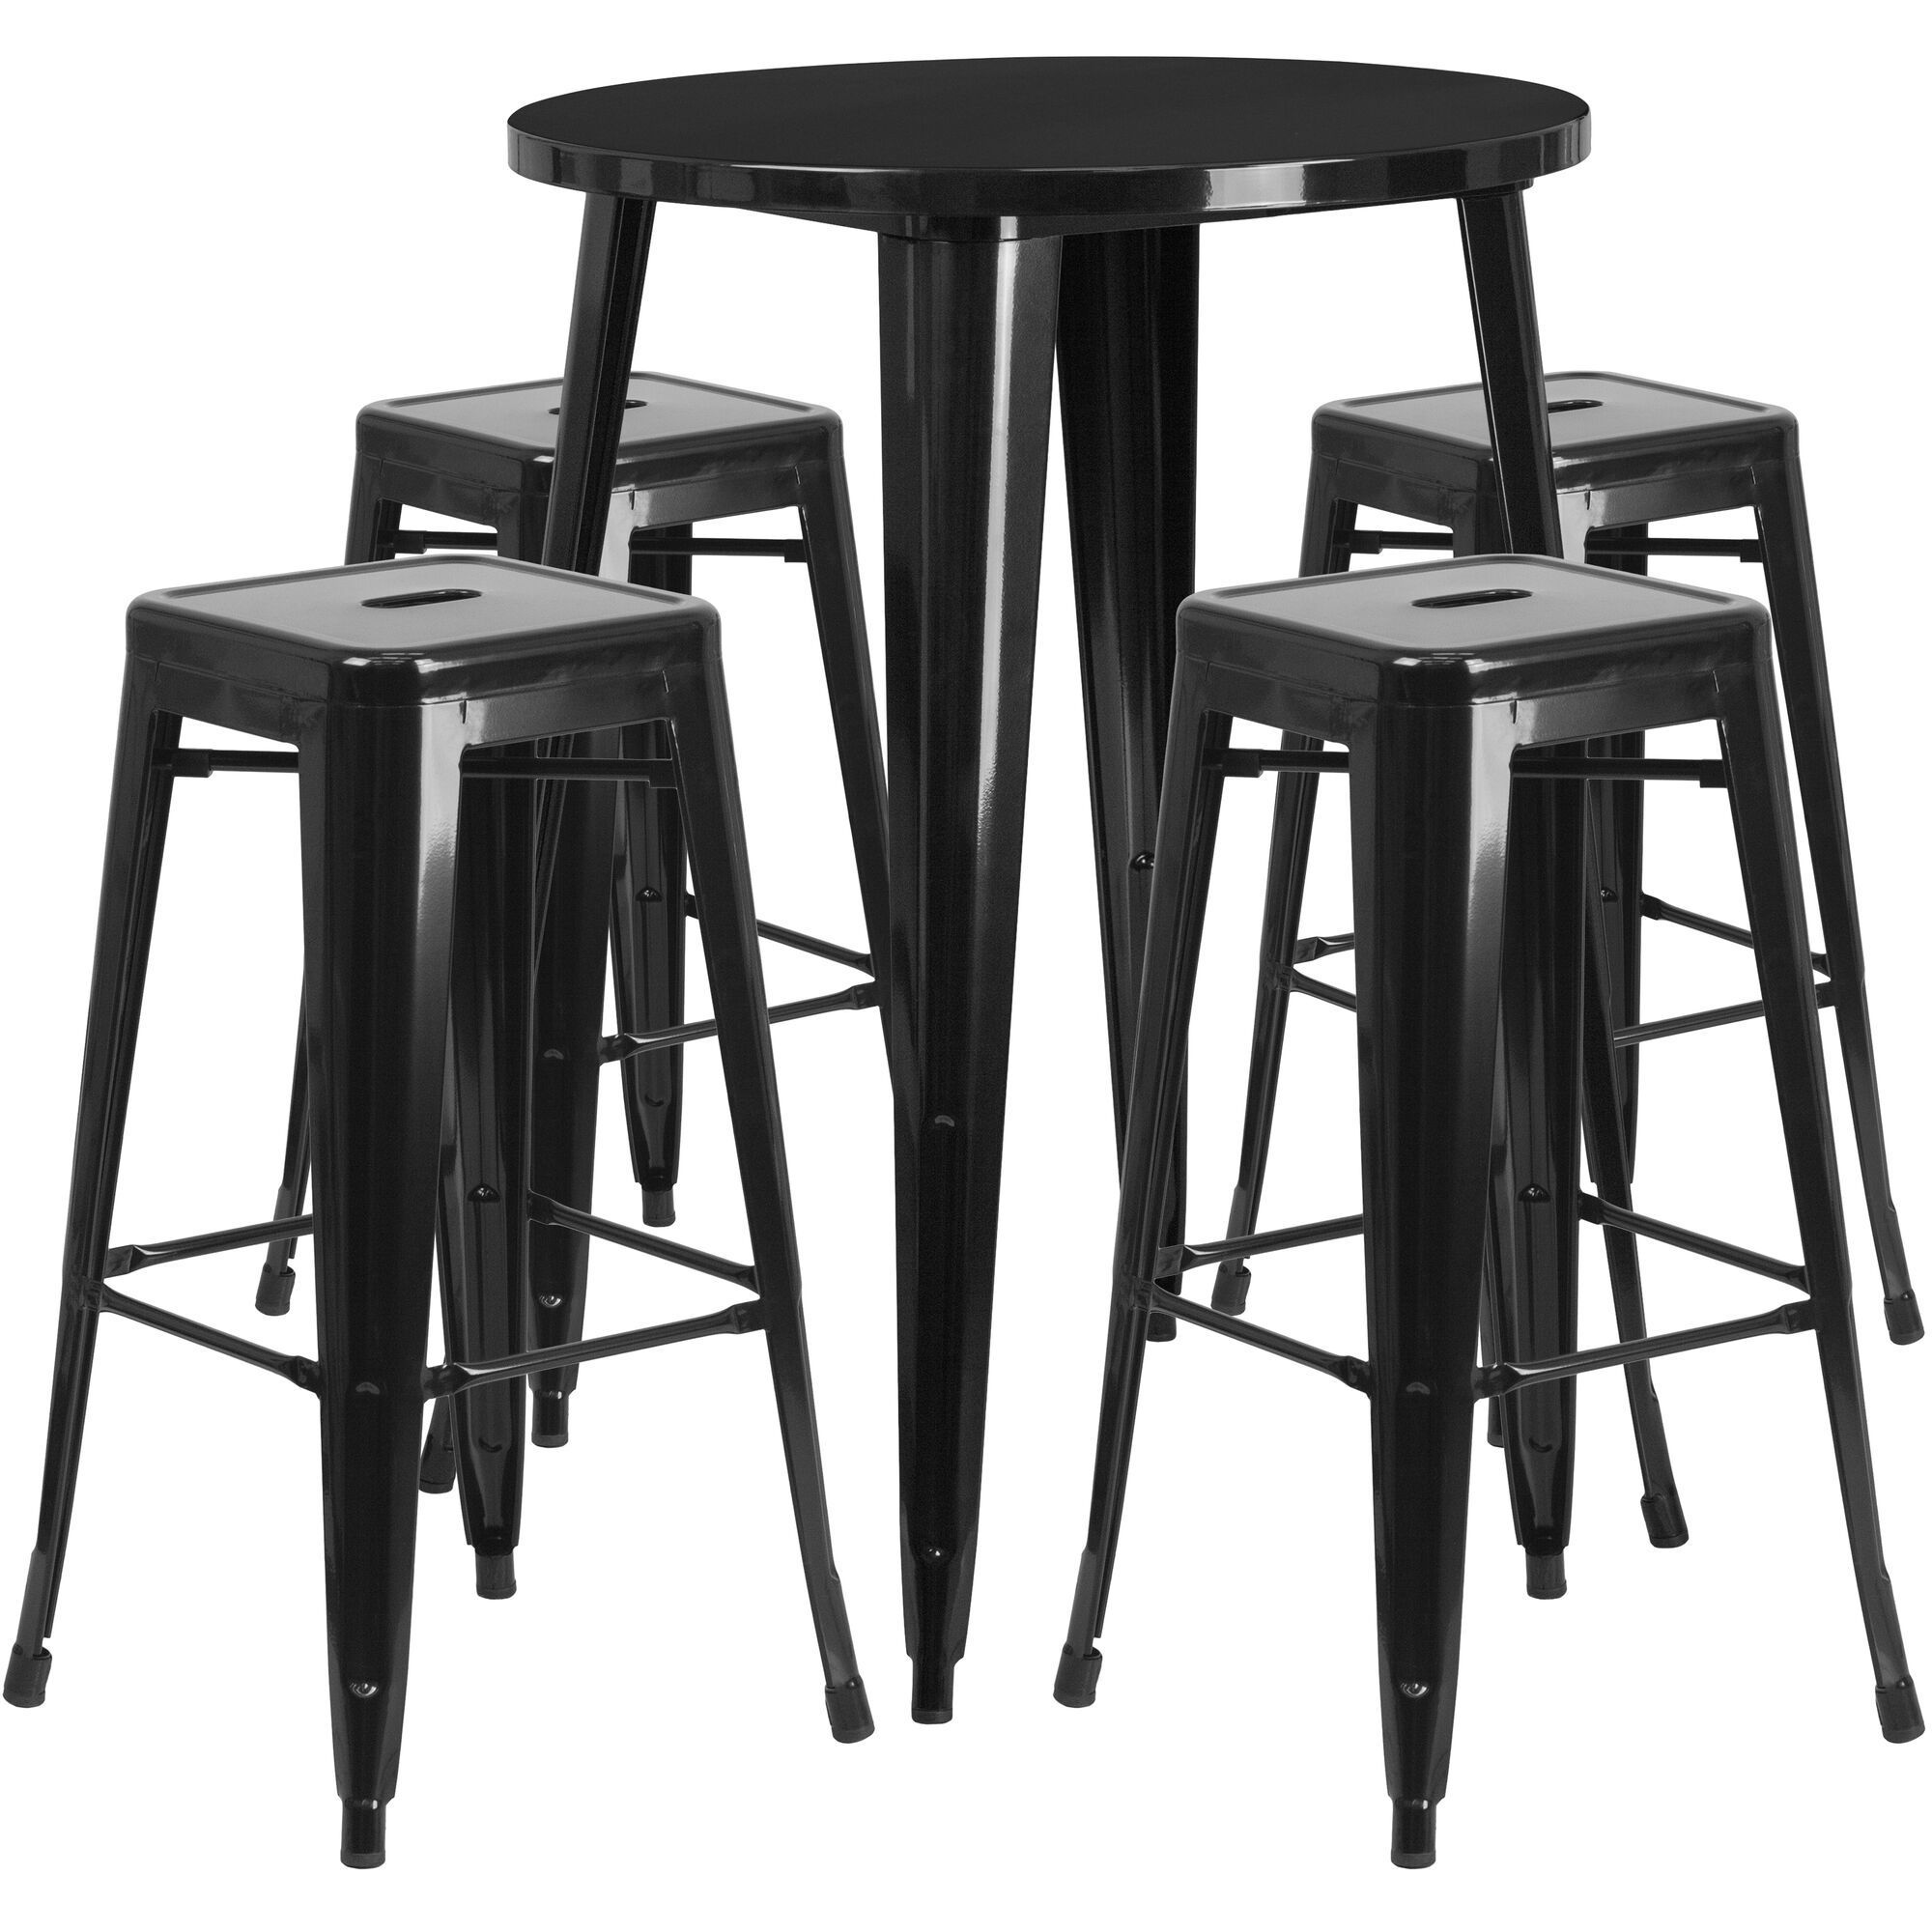 Marvelous Commercial Grade 30 Round Black Metal Indoor Outdoor Bar Table Set With 4 Square Seat Backless Stools Customarchery Wood Chair Design Ideas Customarcherynet